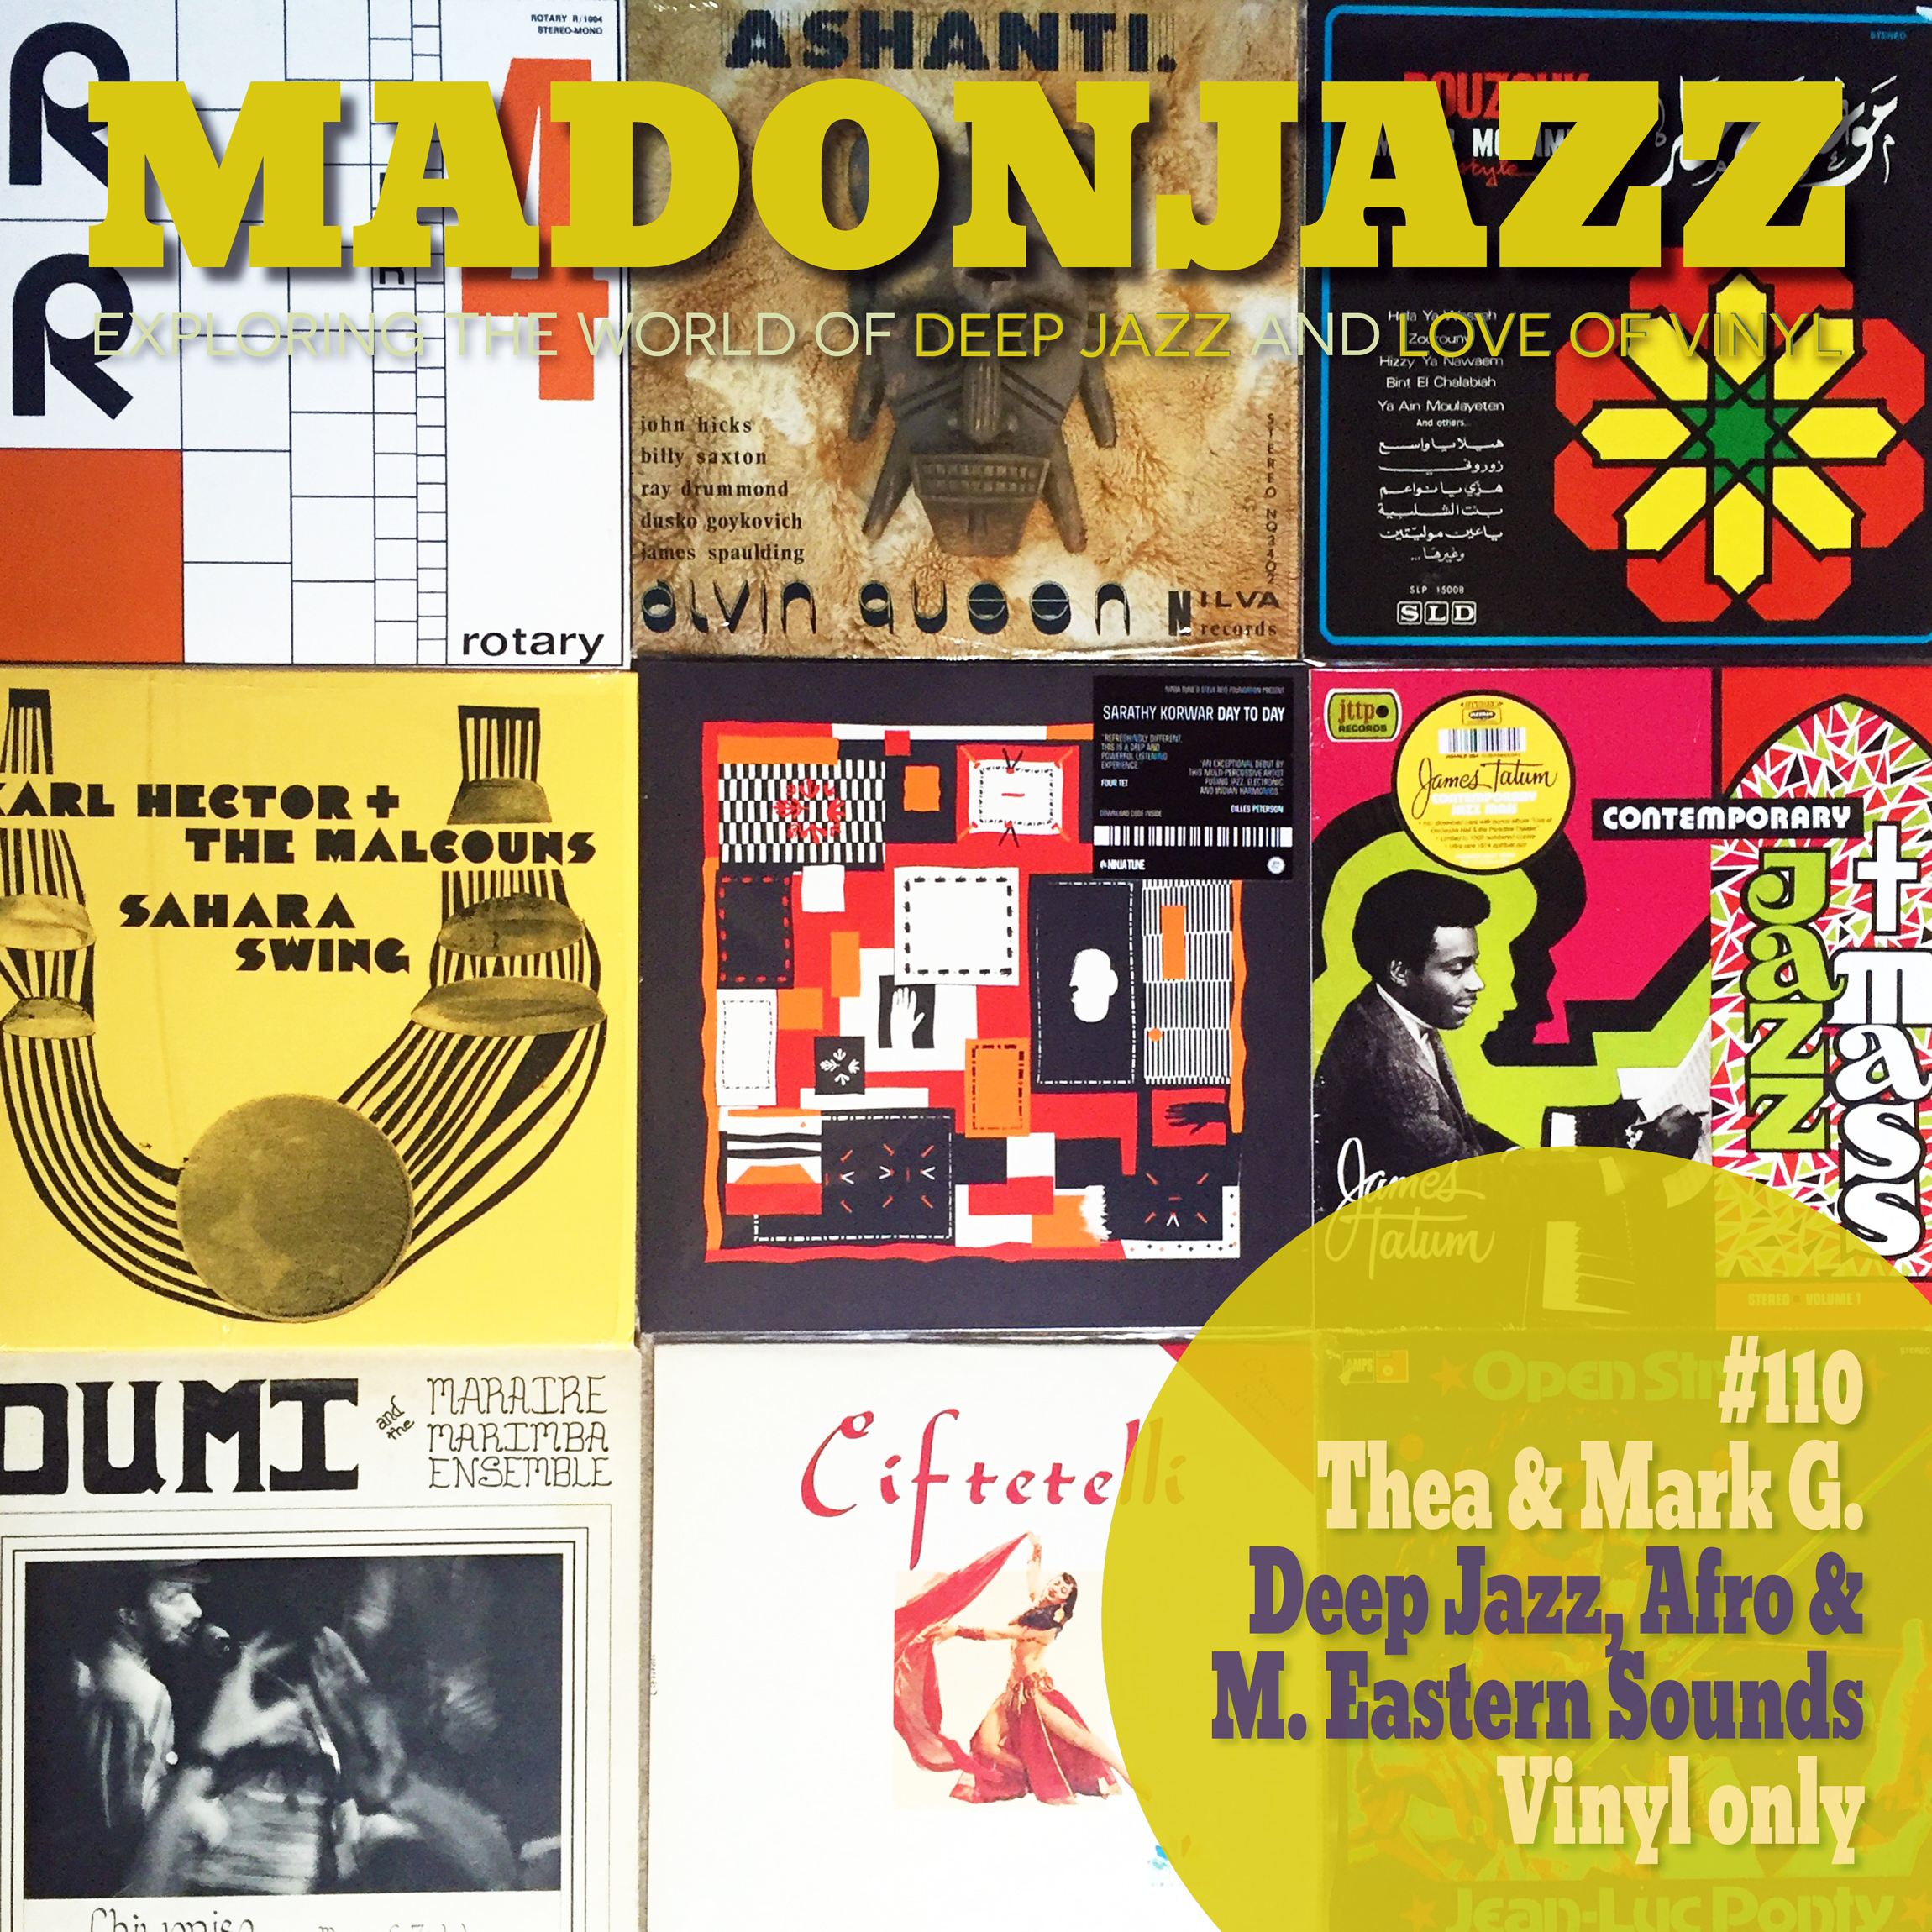 MADONJAZZ #110: Deep Jazz , Afro & Eastern Jazz Sounds w/ Thea & Mark G.